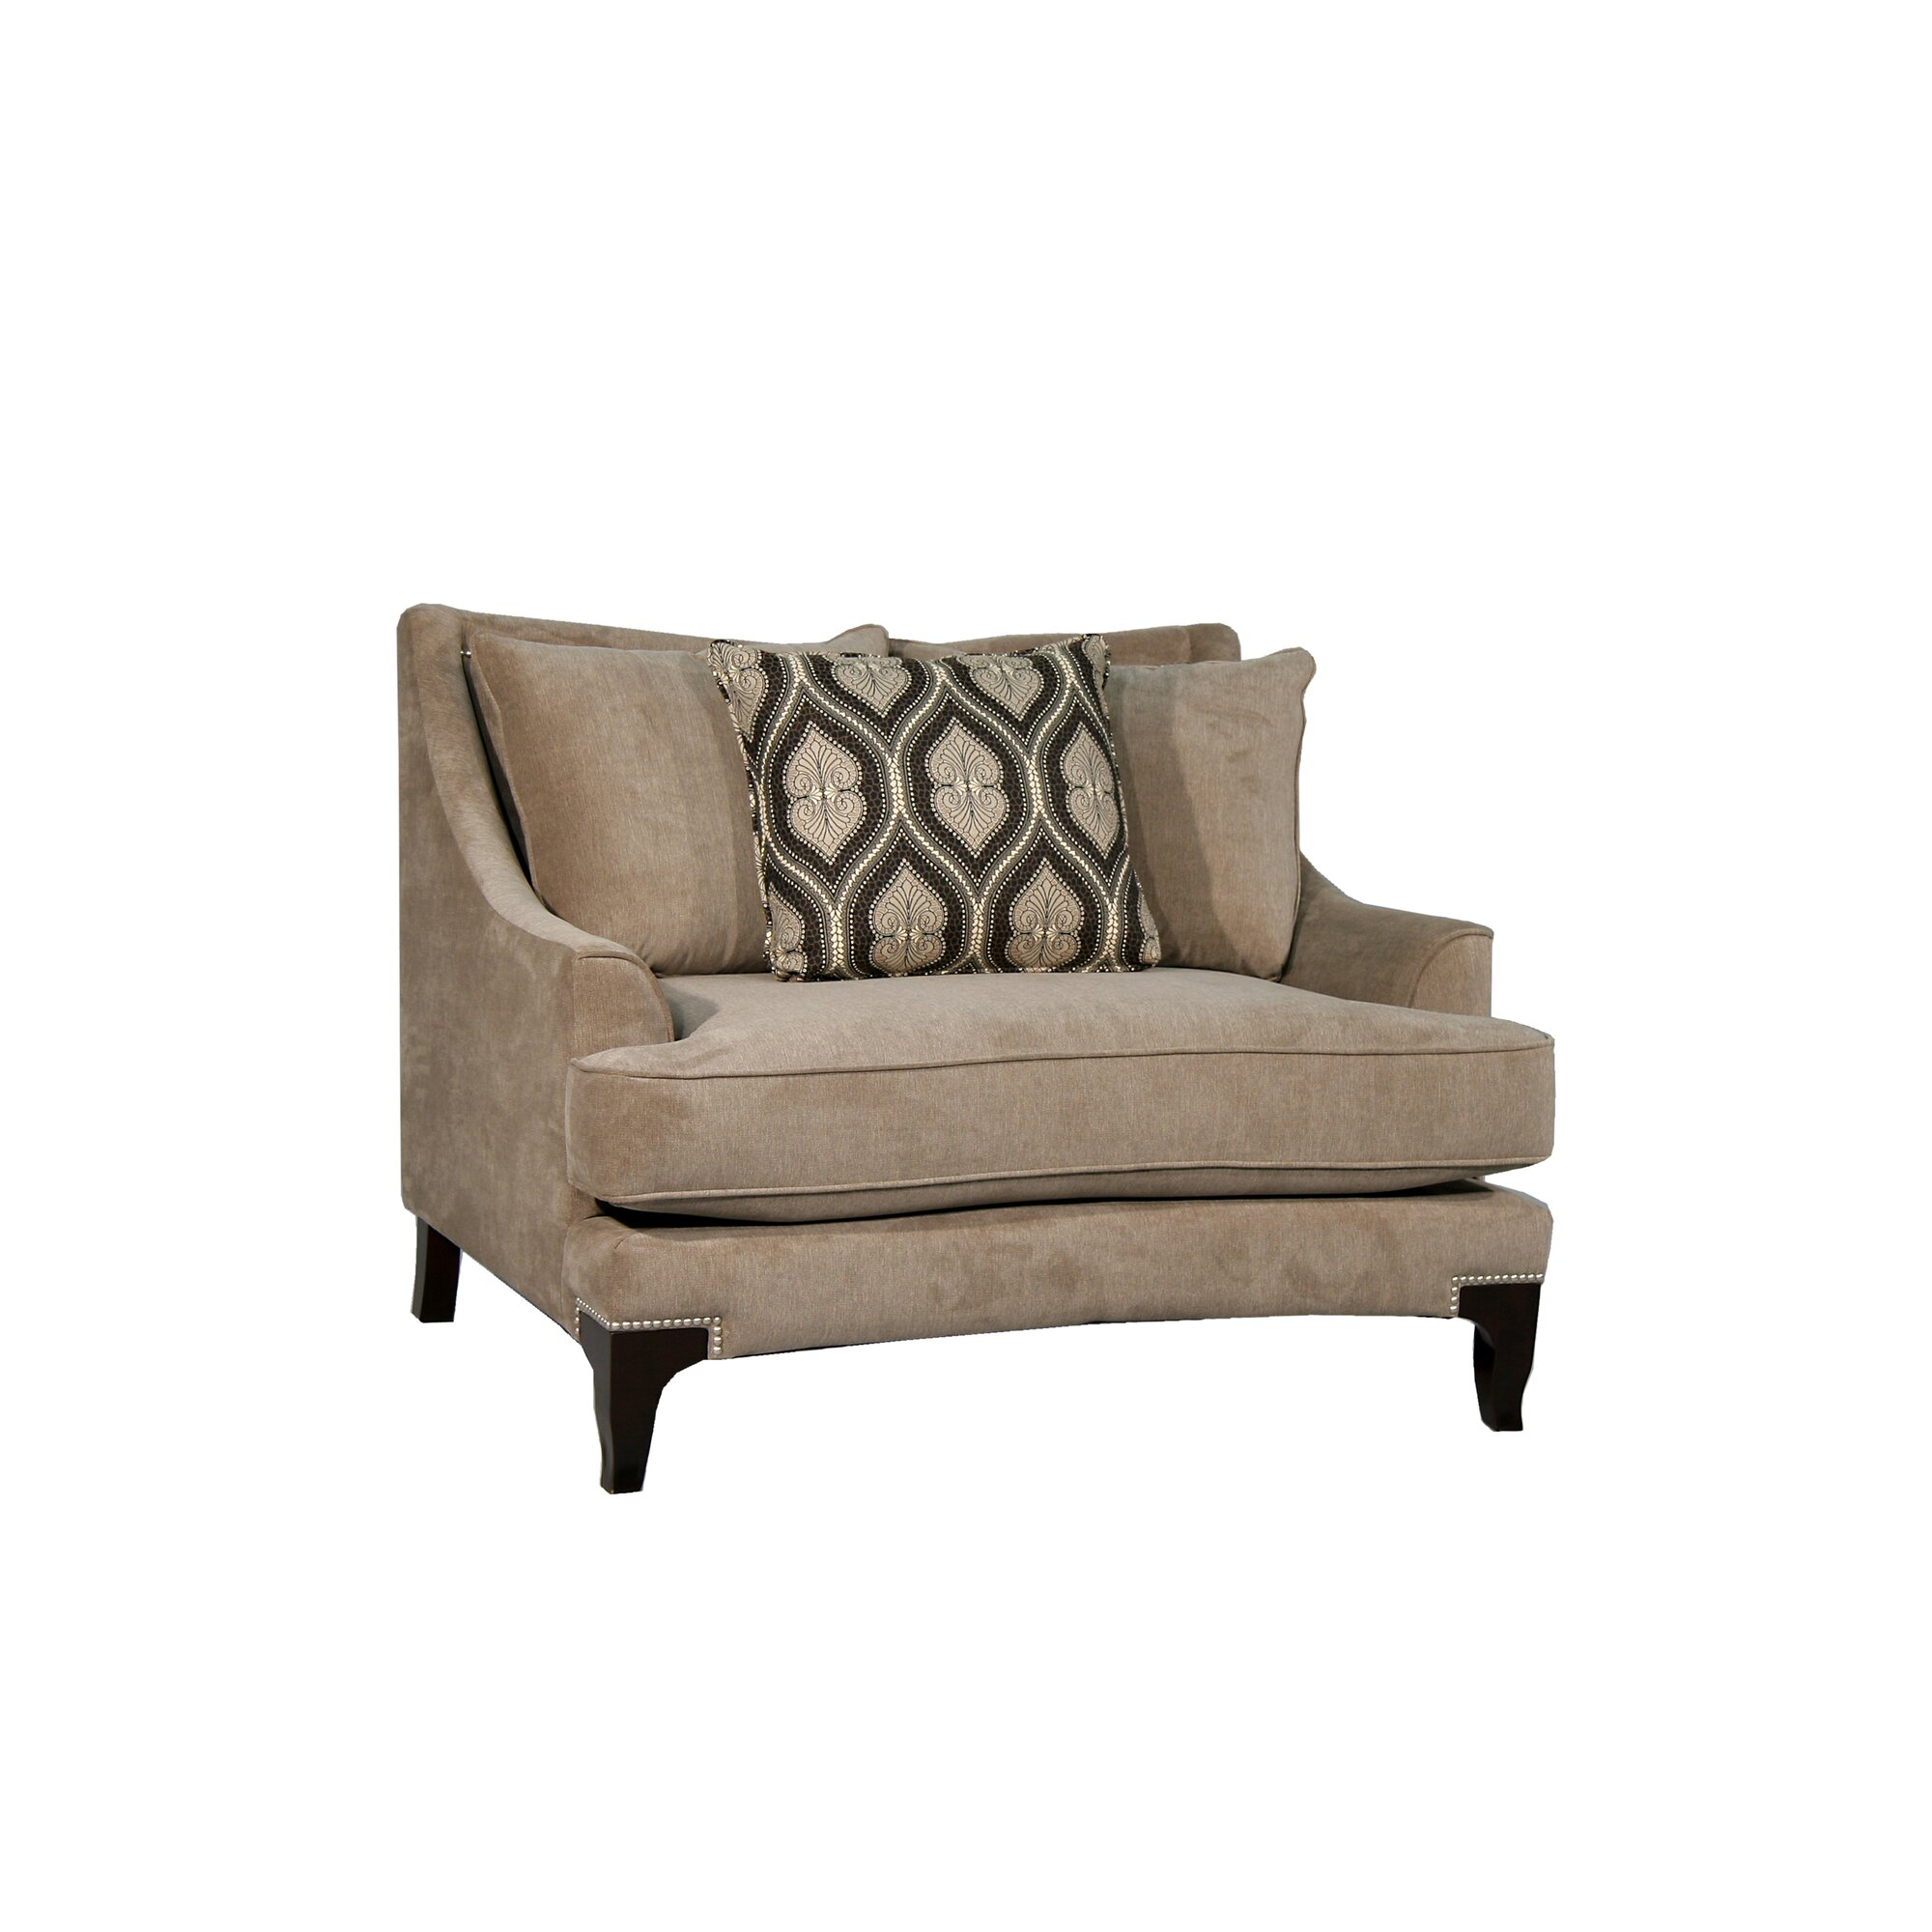 Sage Avenue Uptown Living Room Collection Reviews Wayfair